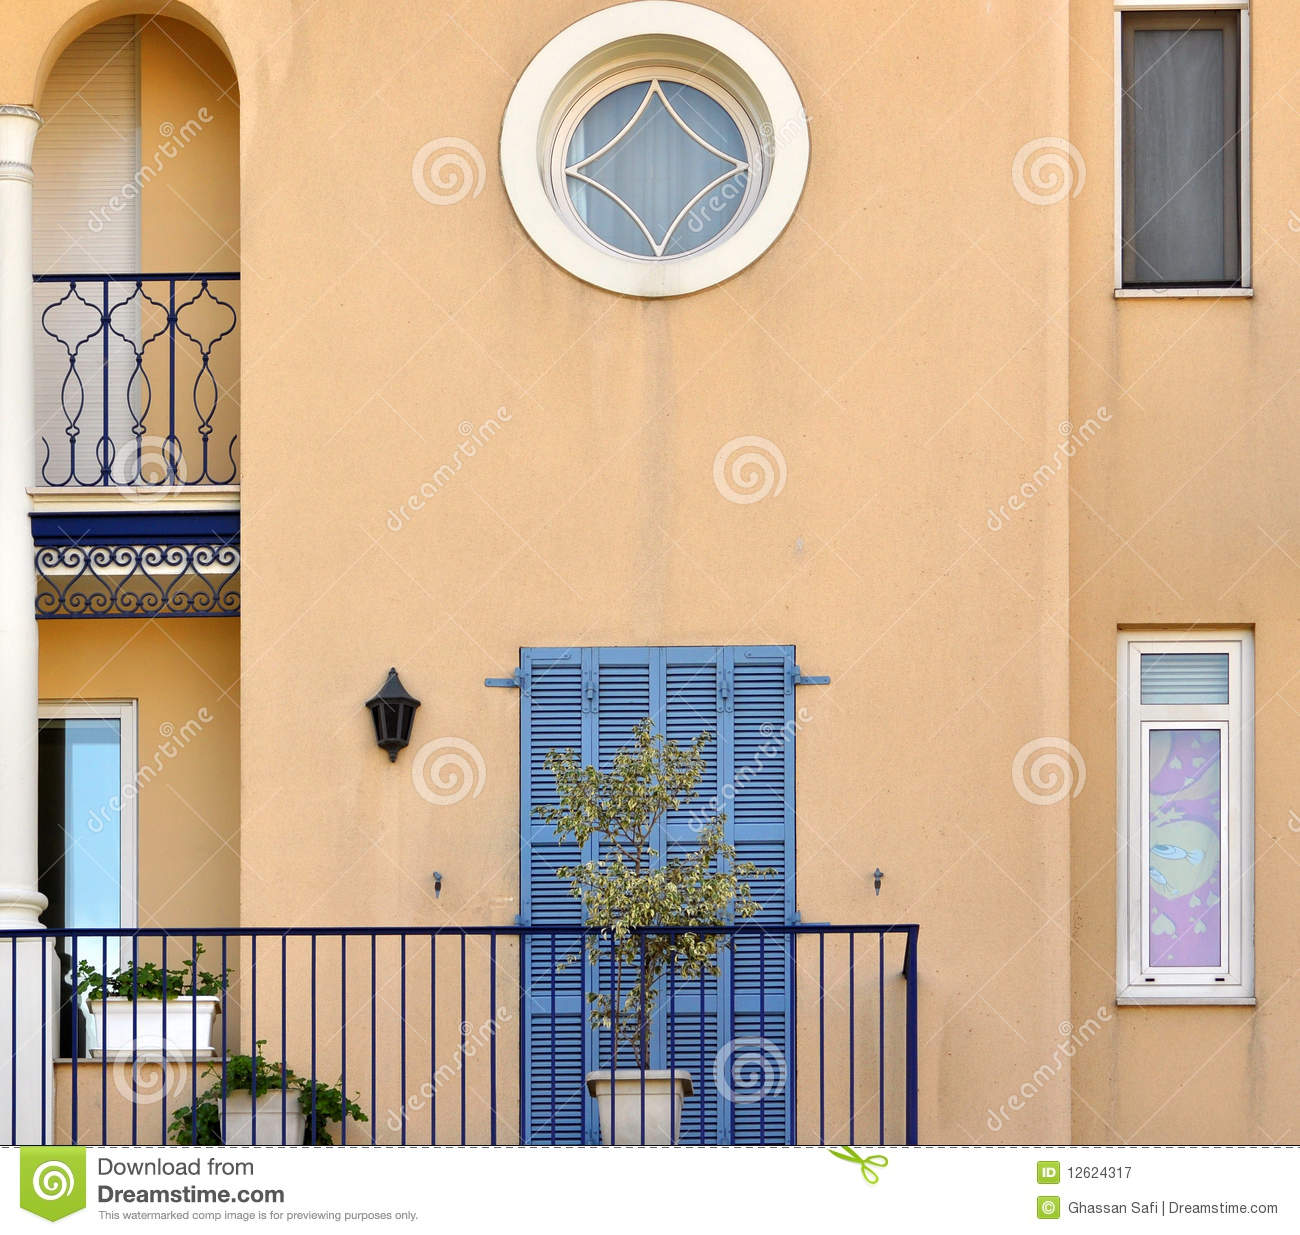 Balcony 02 royalty free stock photography image 12624317 for Balcony aesthetic